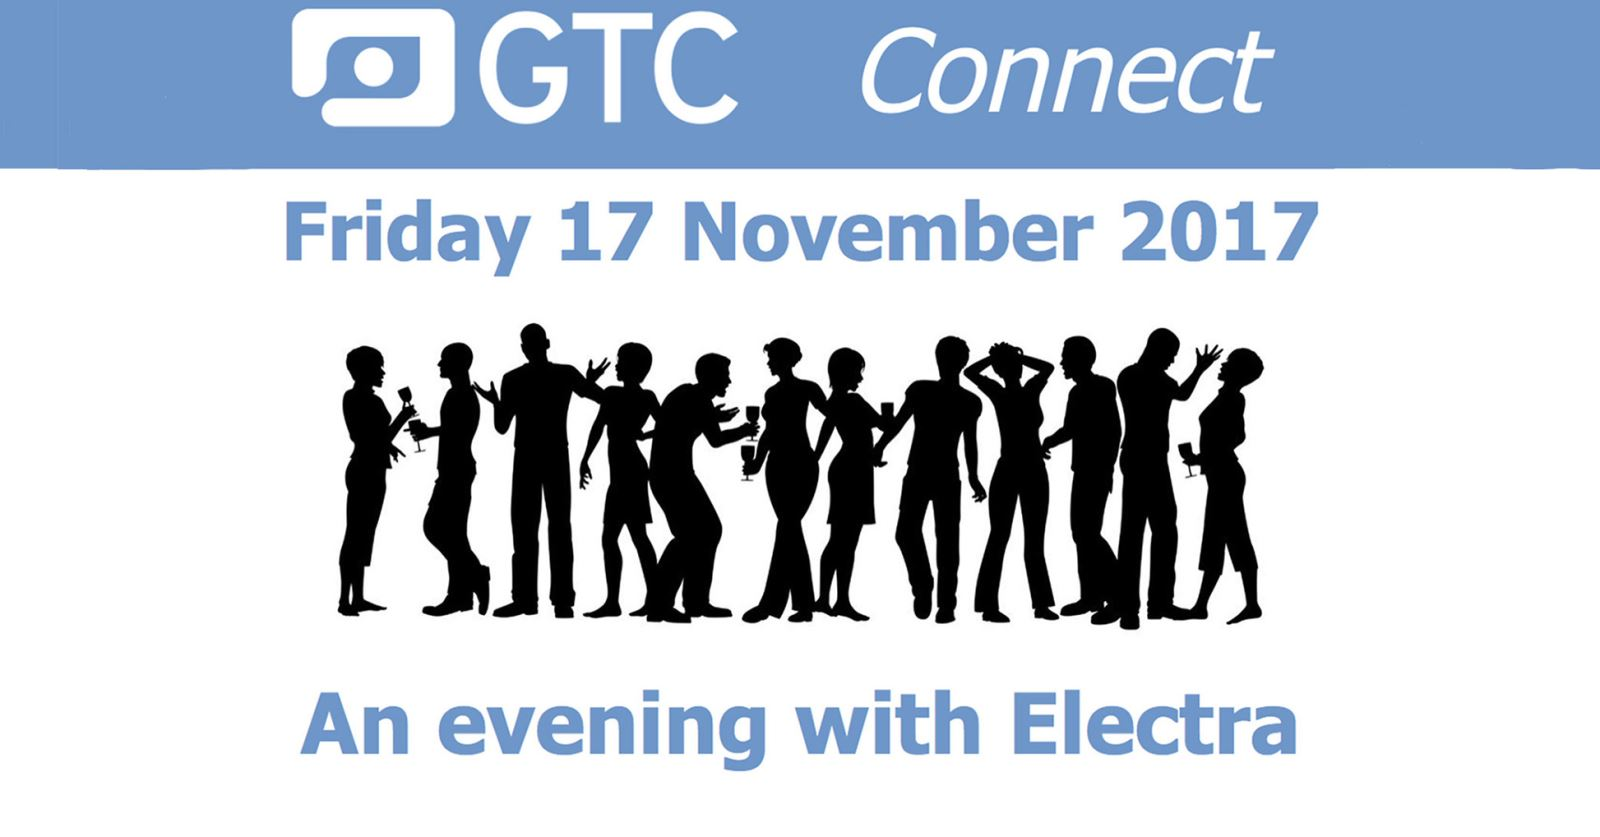 Friday 17 Nov: Join us for the first GTC Connect event - hosted by GTC sponsor Electra Film and TV